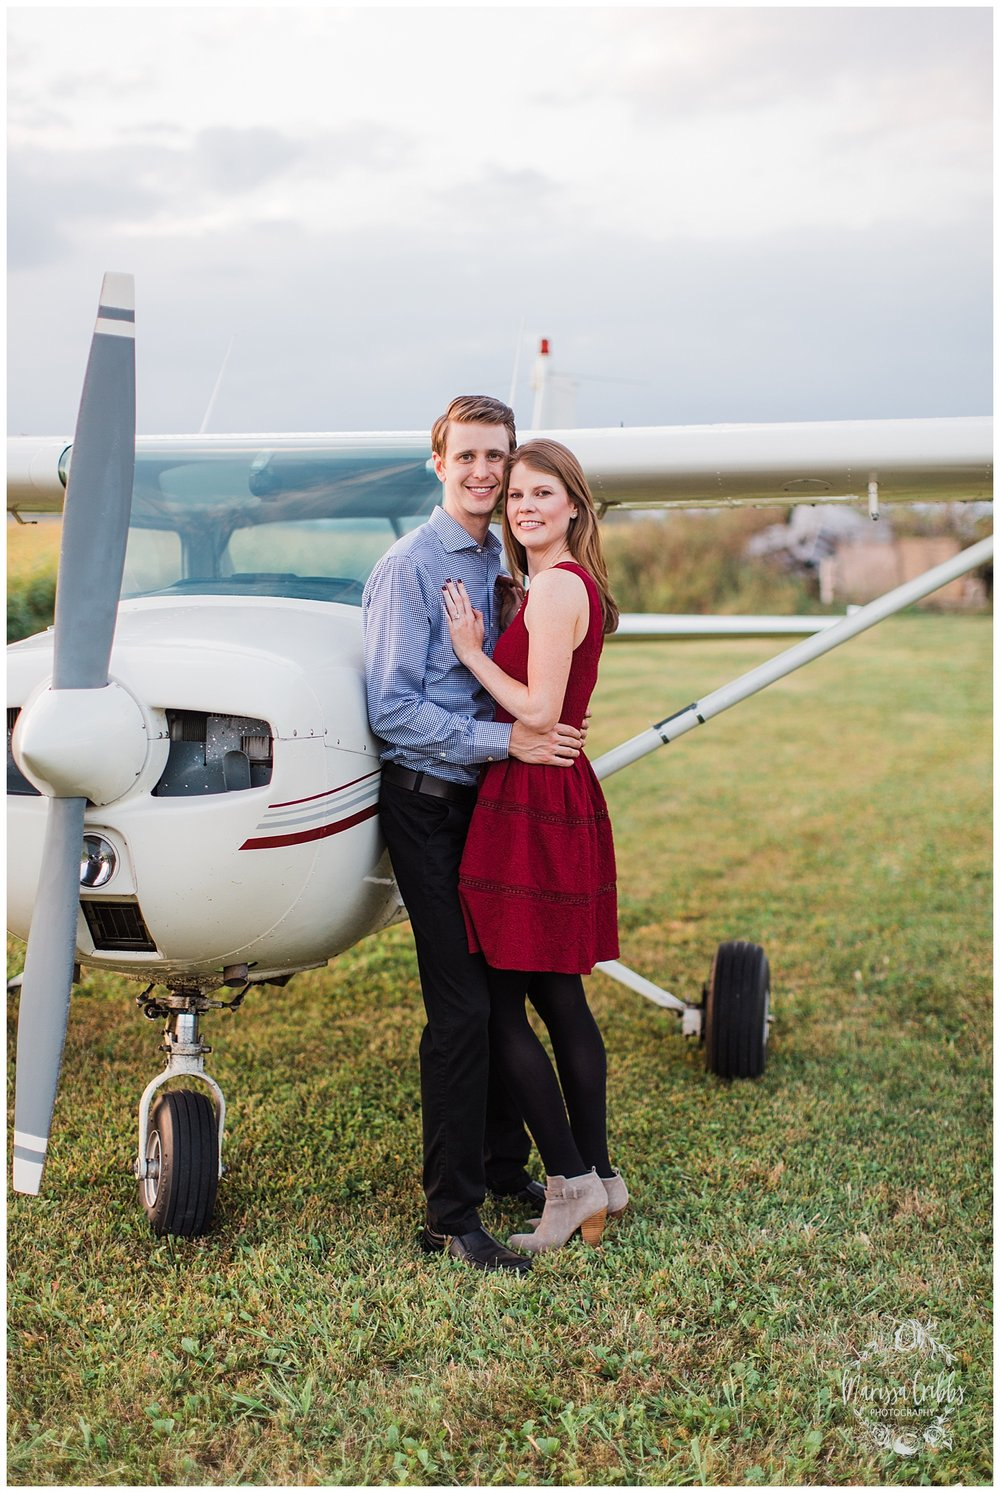 KELLY & BEN ENGAGED | MARISSA CRIBBS PHOTOGRAPHY_3152.jpg